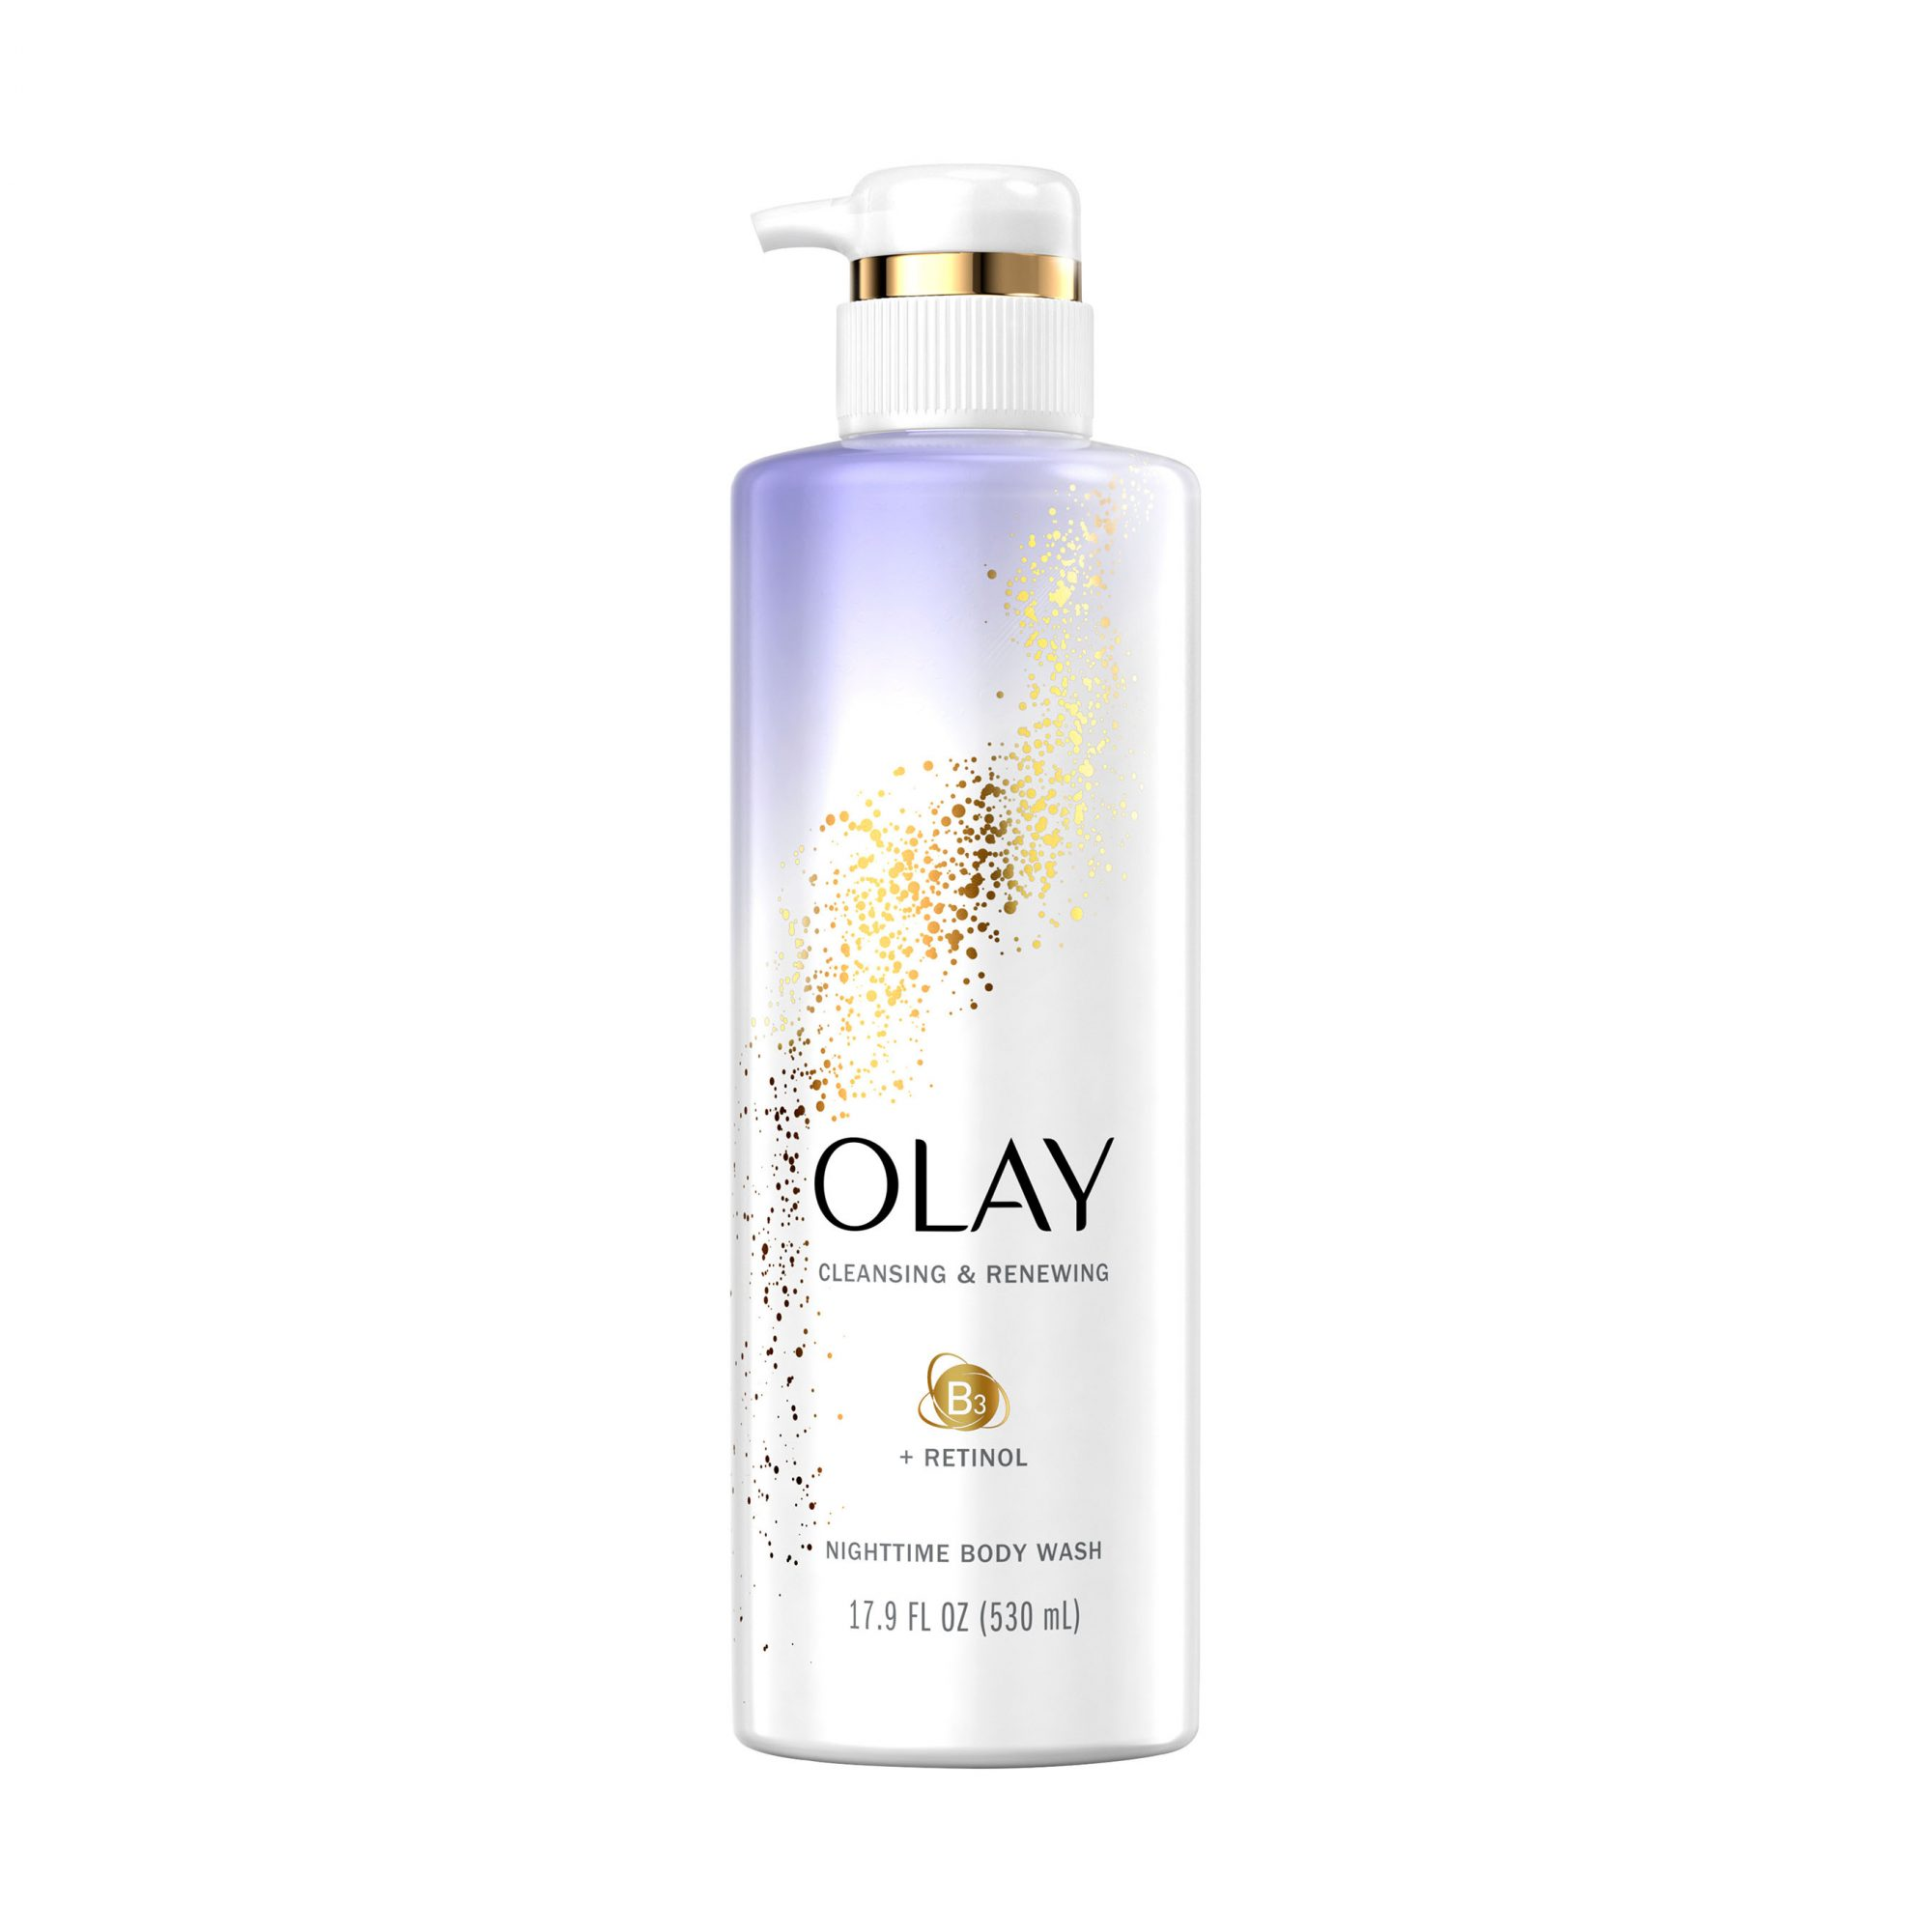 Beauty-Awards-Body-Olay-Cleansing-&-Renewing-Nighttime-Body-Wash